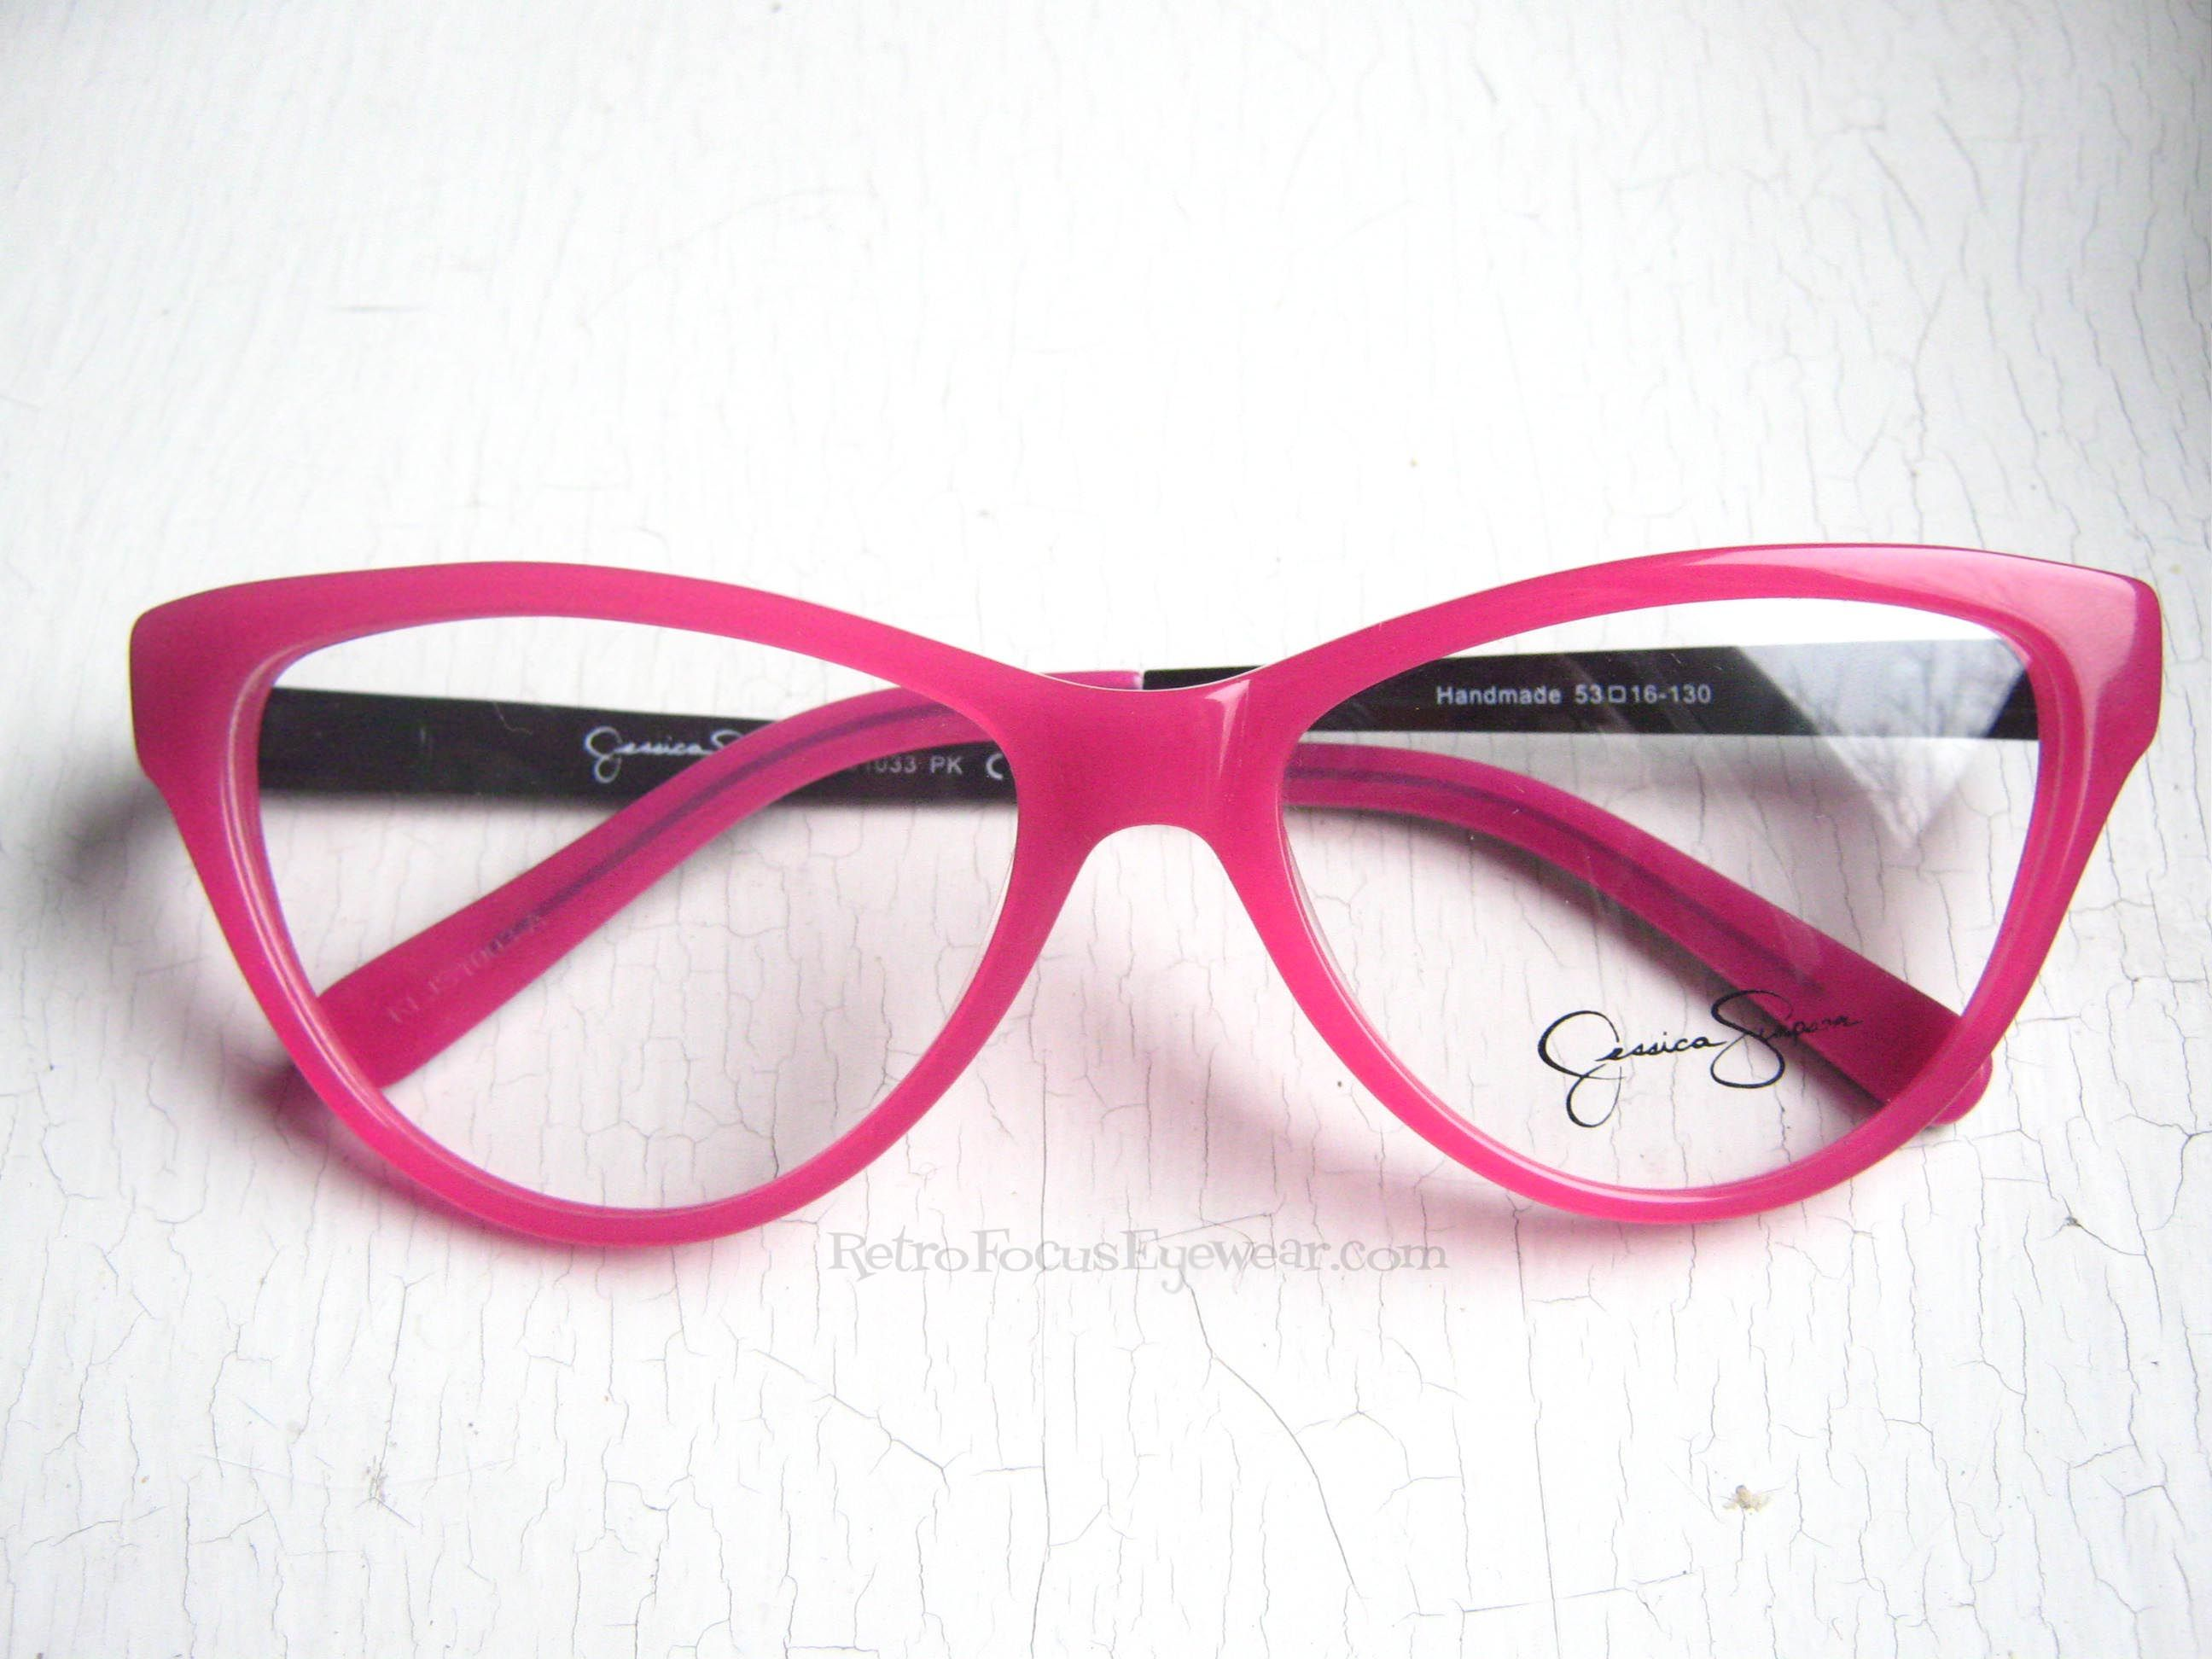 554dea98a1 Jessica Simpson Pink Oversized Eyeglass Frames. Gorgeous cat eye eyeglass  frames with black pink leopard temples.